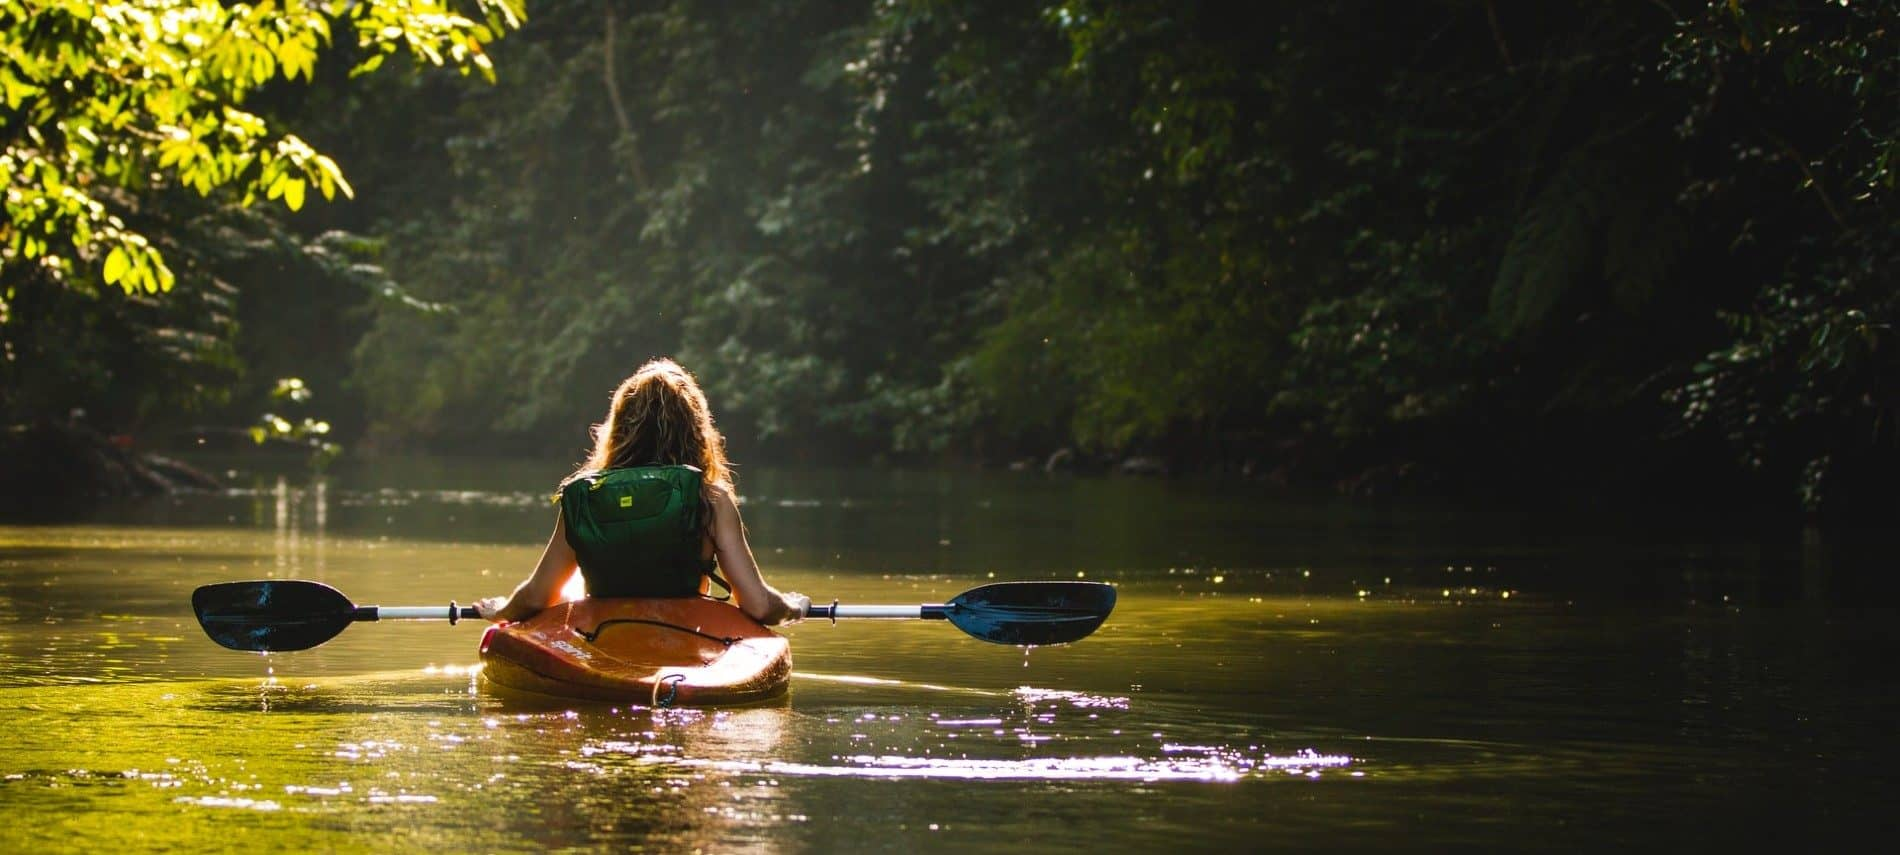 One lone kayaker paddling down a river surrounded by trees and greenery in soft sunlight